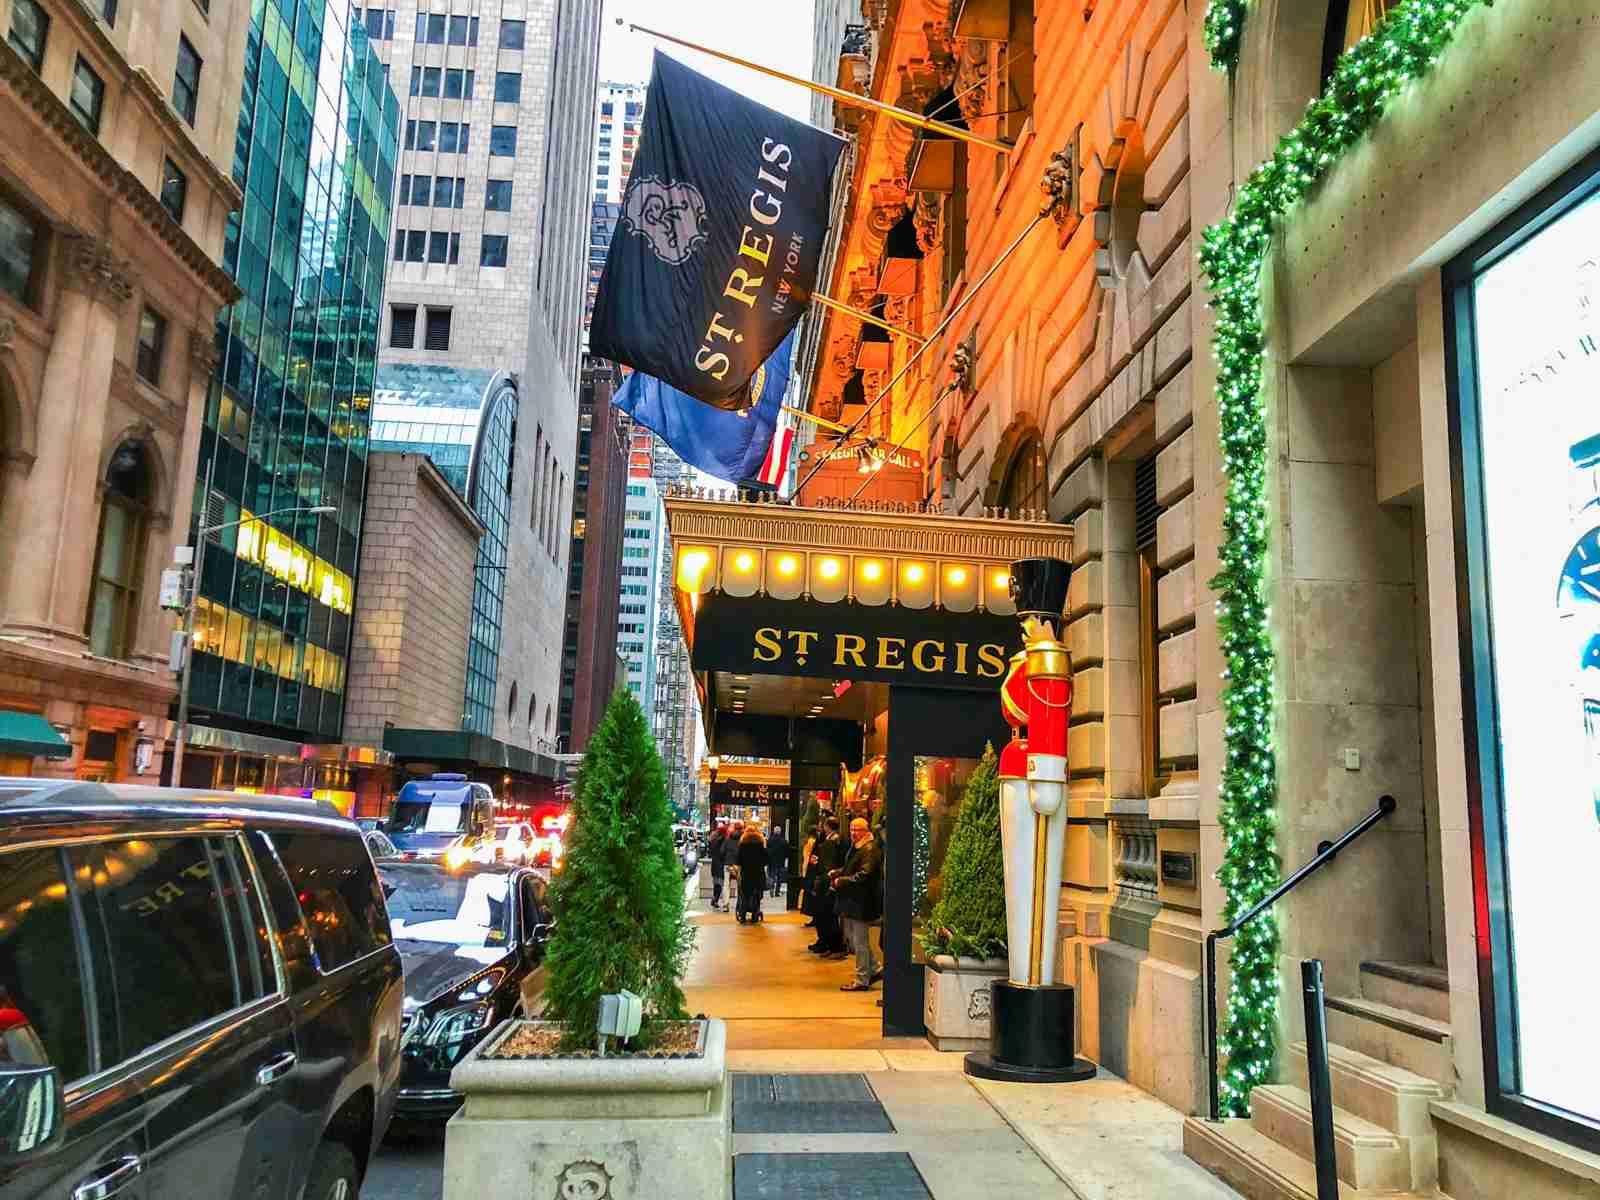 St. Regis New York (Summer Hull / The Points Guy)